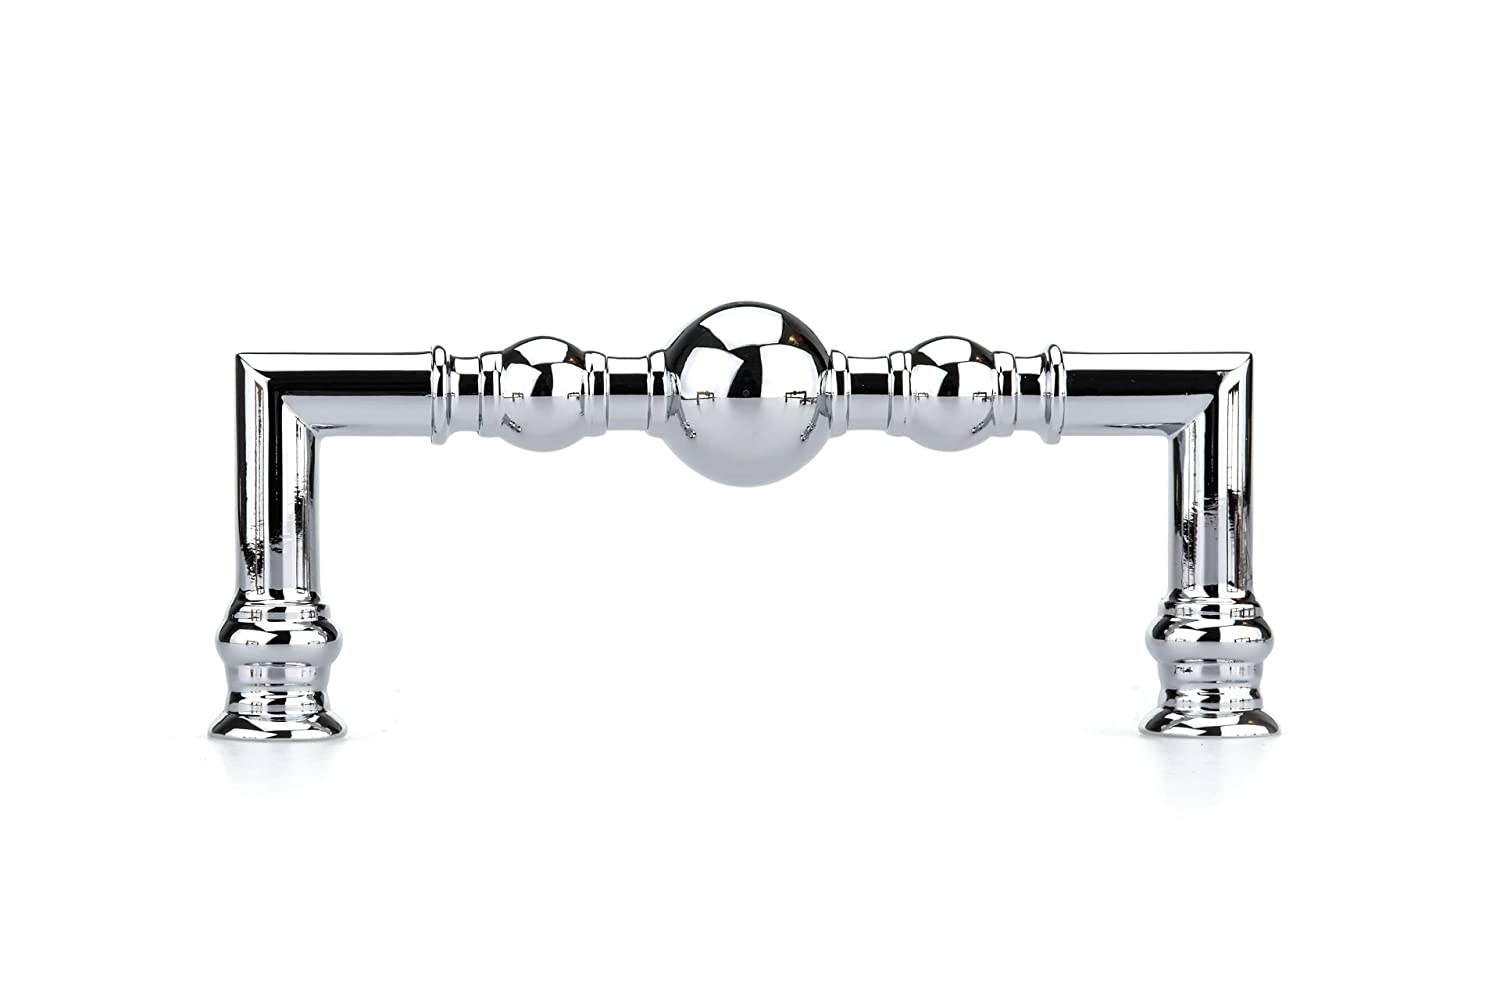 96 mm Traditional Metal Pull 8789-3 25//32 in Richelieu Hardware BP878996140 - Chrome  Finish